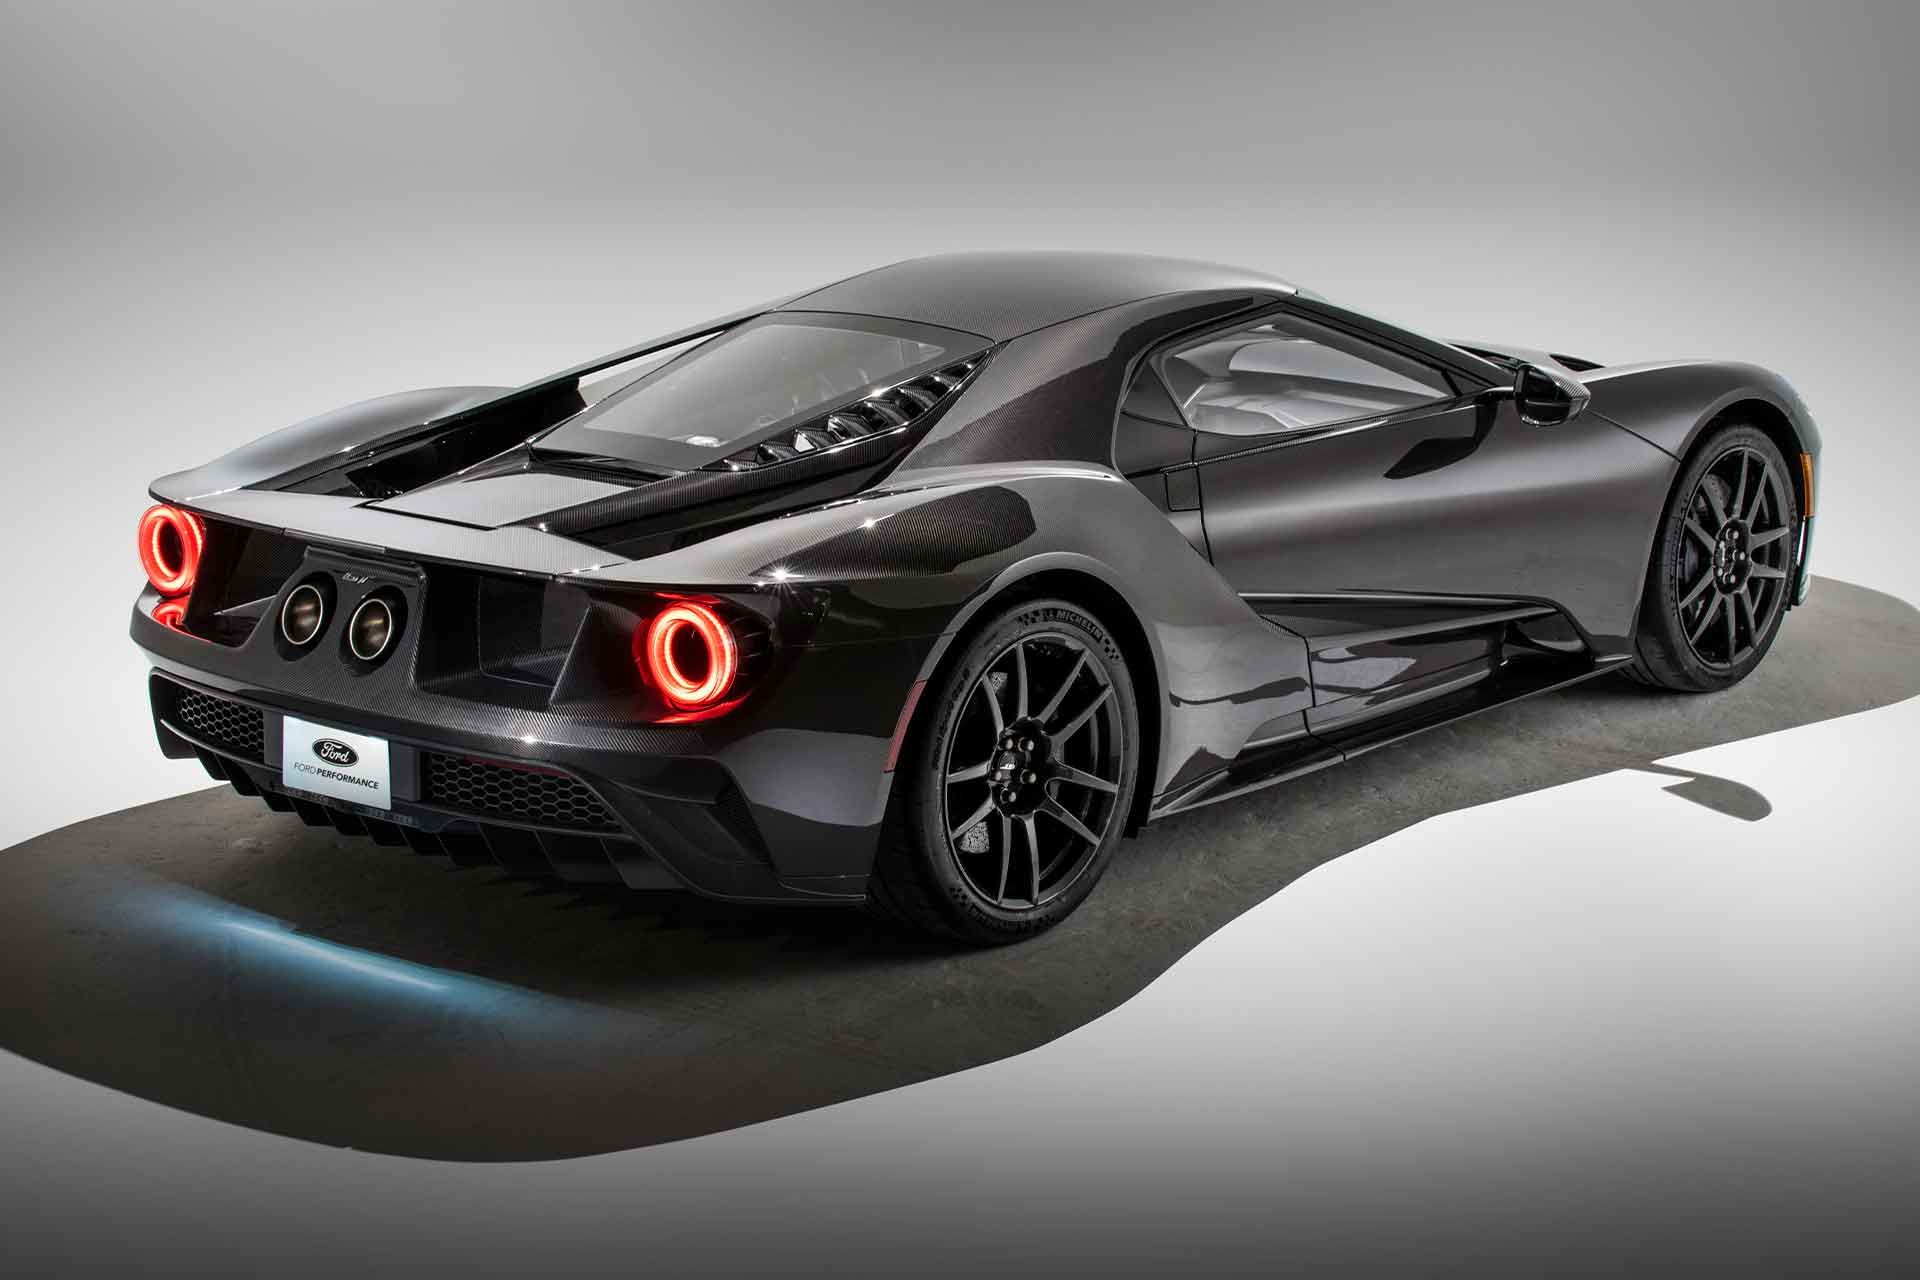 Ford Is Continuing To Refine The Ford Gt Even As It Nears The End Of Its Extremely Limited Production Run The New Liquid Carbon Ford Gt Super Cars Twin Turbo